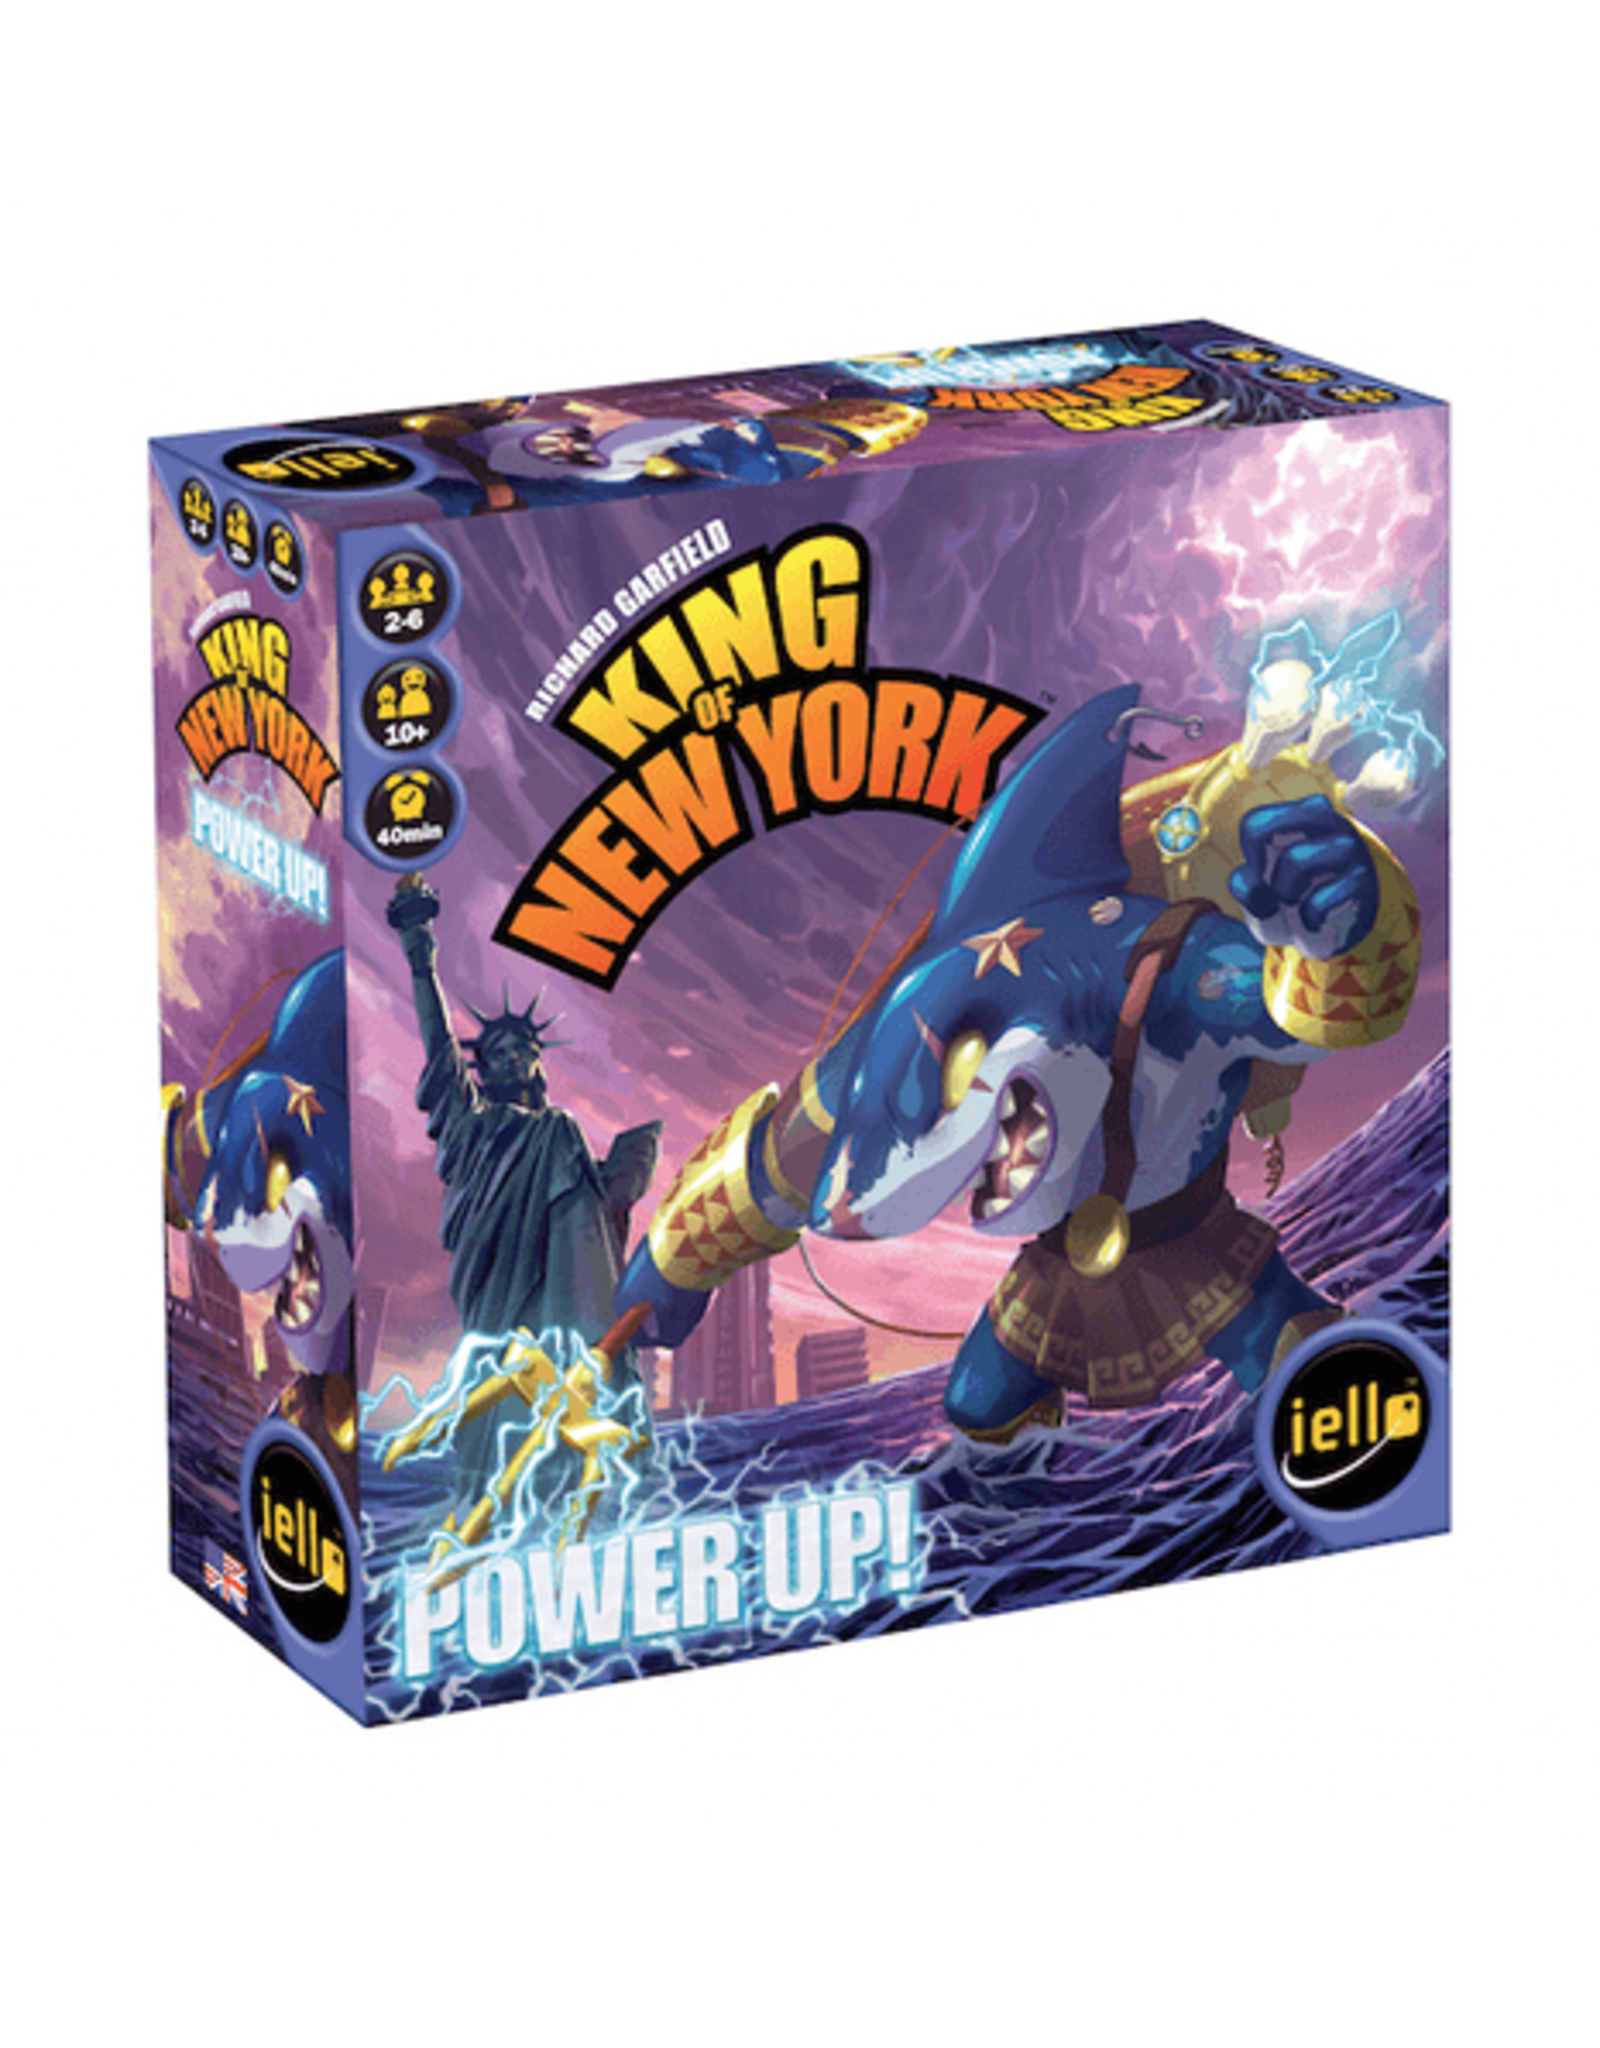 Iello King of New York: Power Up!